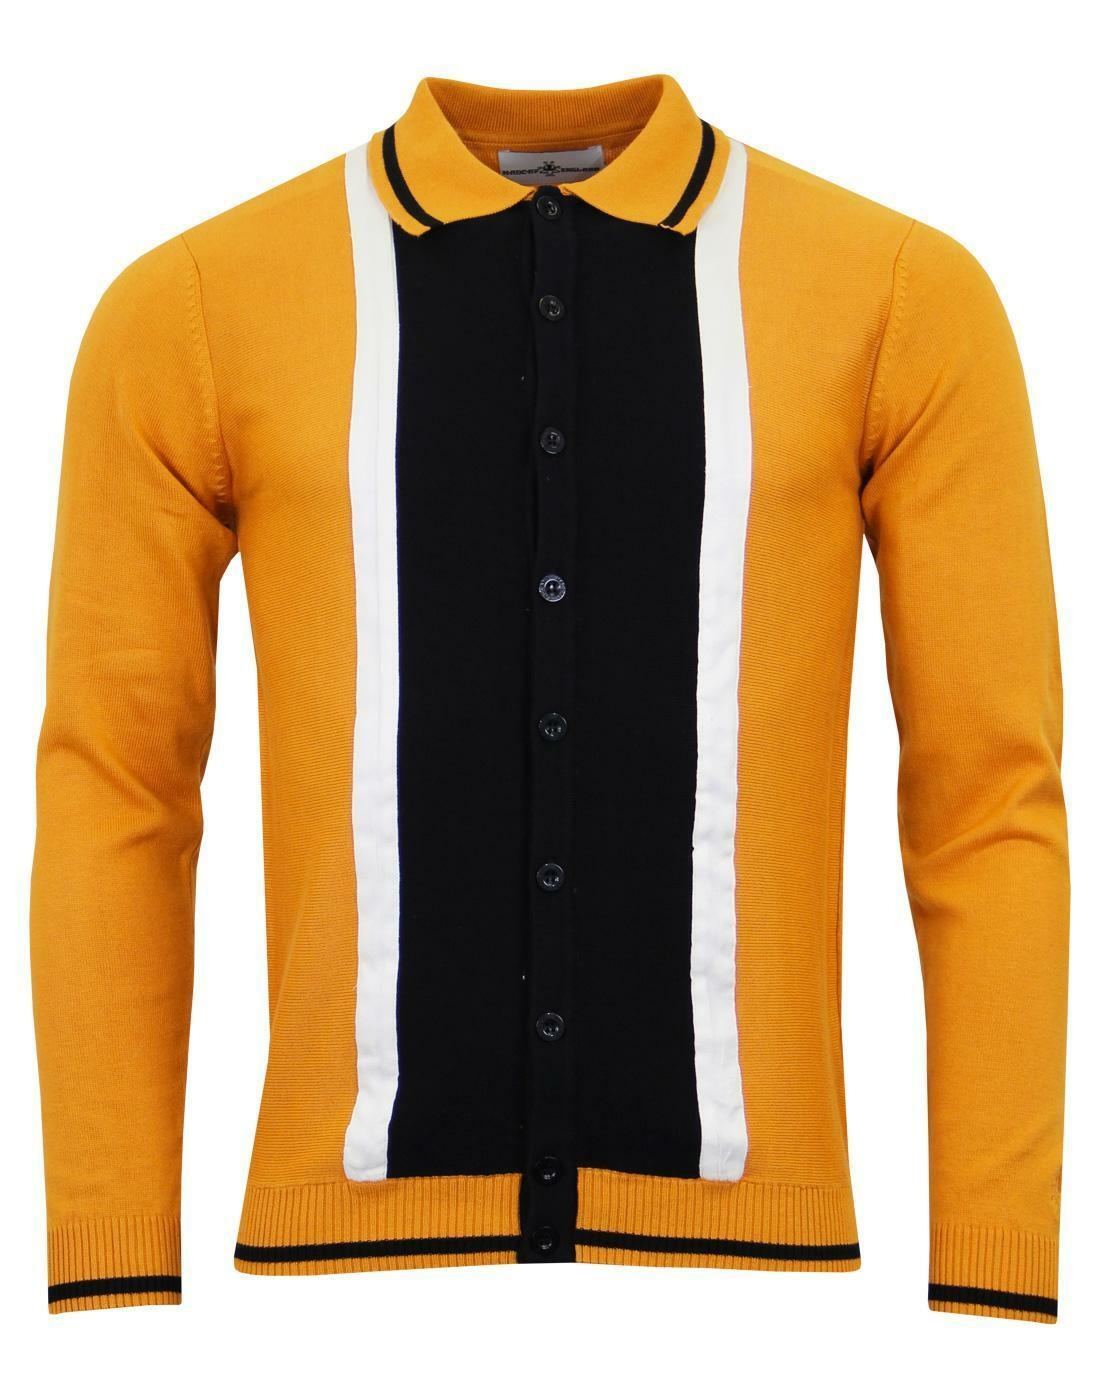 NEW  MADCAP RETRO MOD 60s SUEDE MARRIOTT CARDIGAN POLO SHIRT GoldEN OAK MC200 H1  | Won hoch geschätzt und weithin vertraut im in- und Ausland vertraut